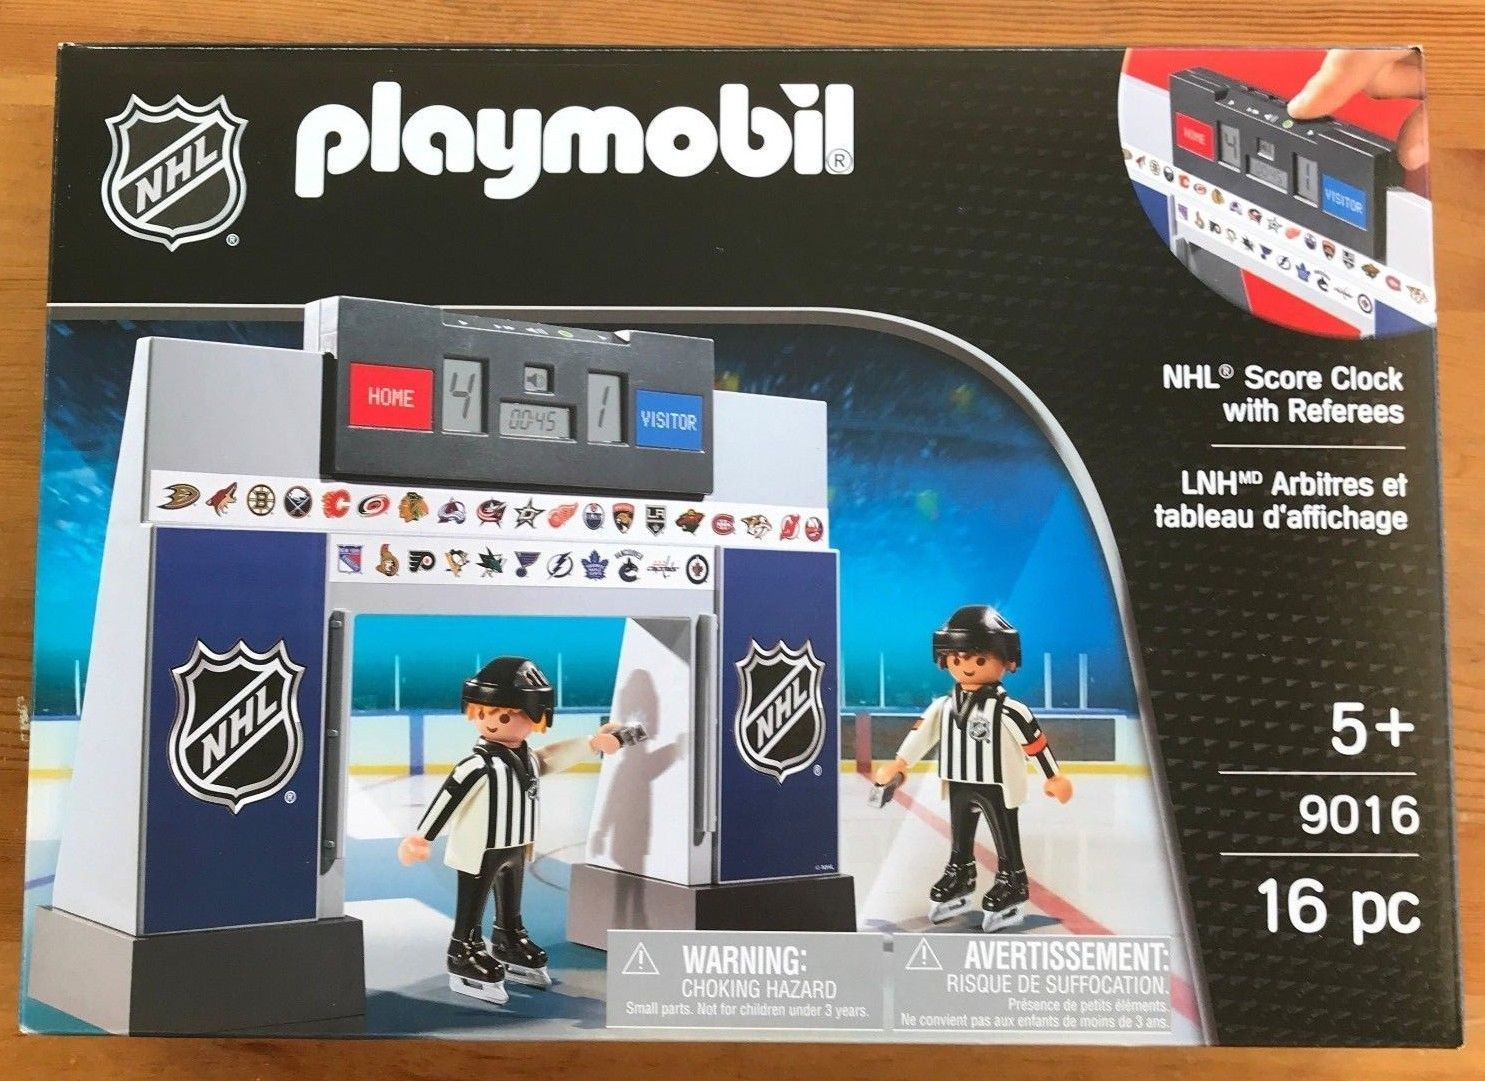 Playmobil Nhl Score Clock With Referees Kids Toys And Pretend Play Playmobil Nhl Hockey Kids Party